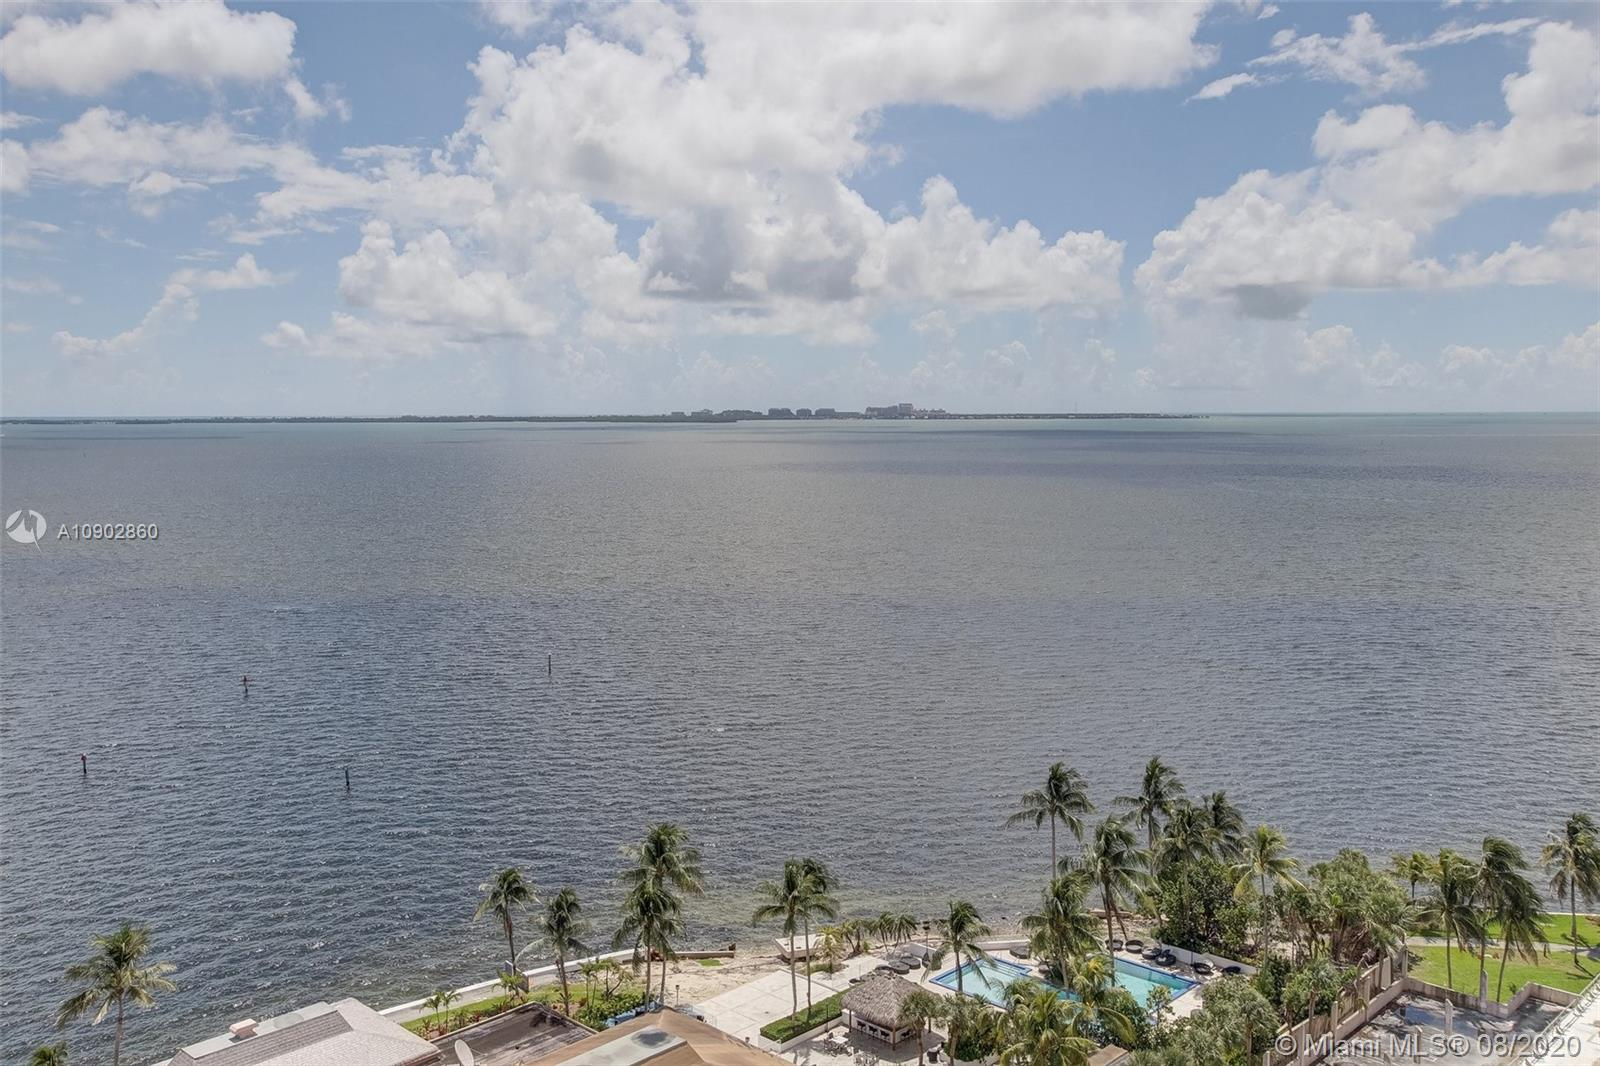 3 Grove Isle Drive # C1809, Miami, Florida 33133, 3 Bedrooms Bedrooms, ,3 BathroomsBathrooms,Residential,For Sale,3 Grove Isle Drive # C1809,A10902860